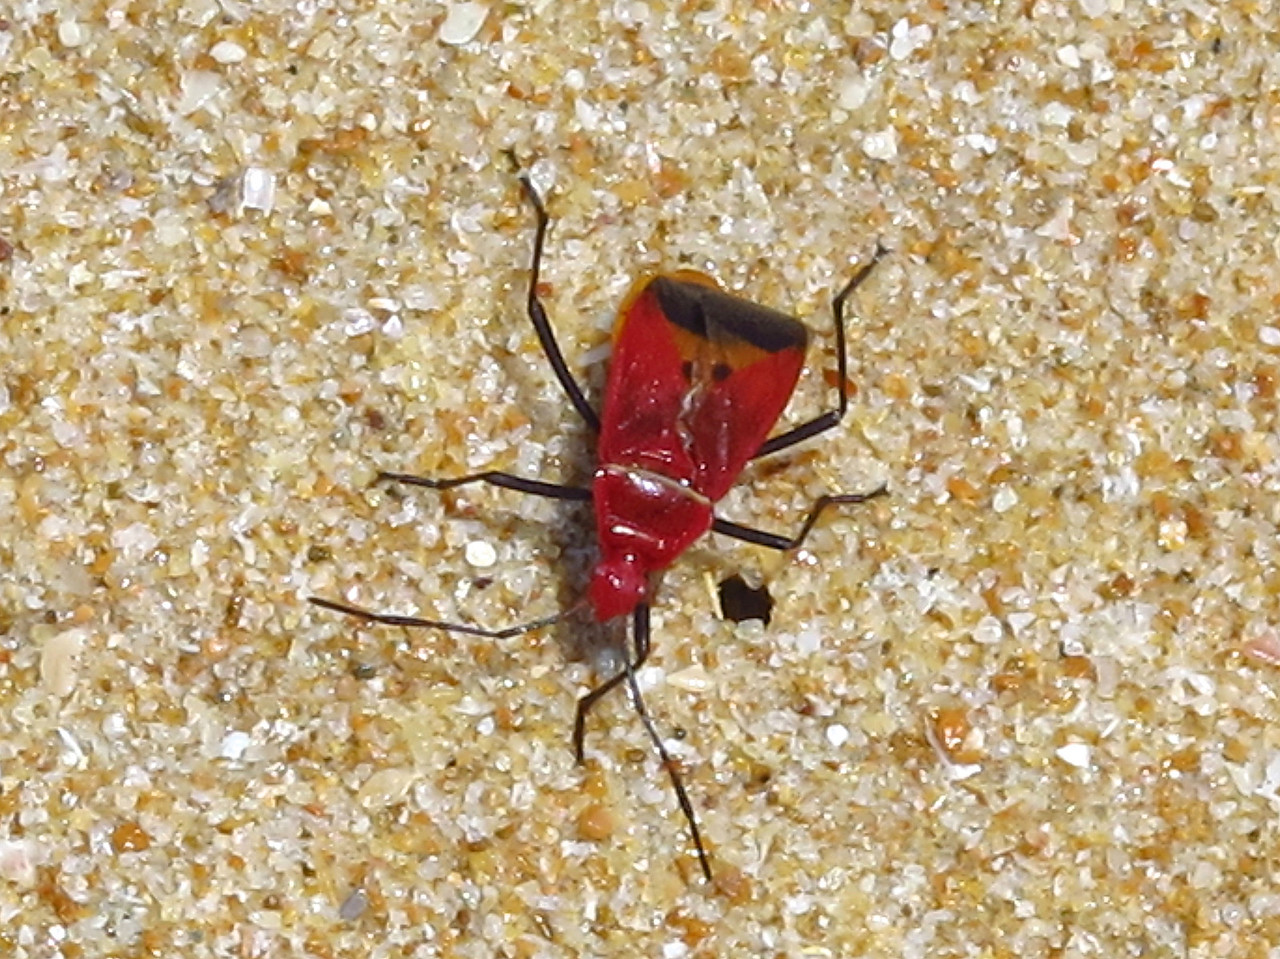 There's a few insects as well, although the almost constant ocean breezes, keep insects to a minimum.